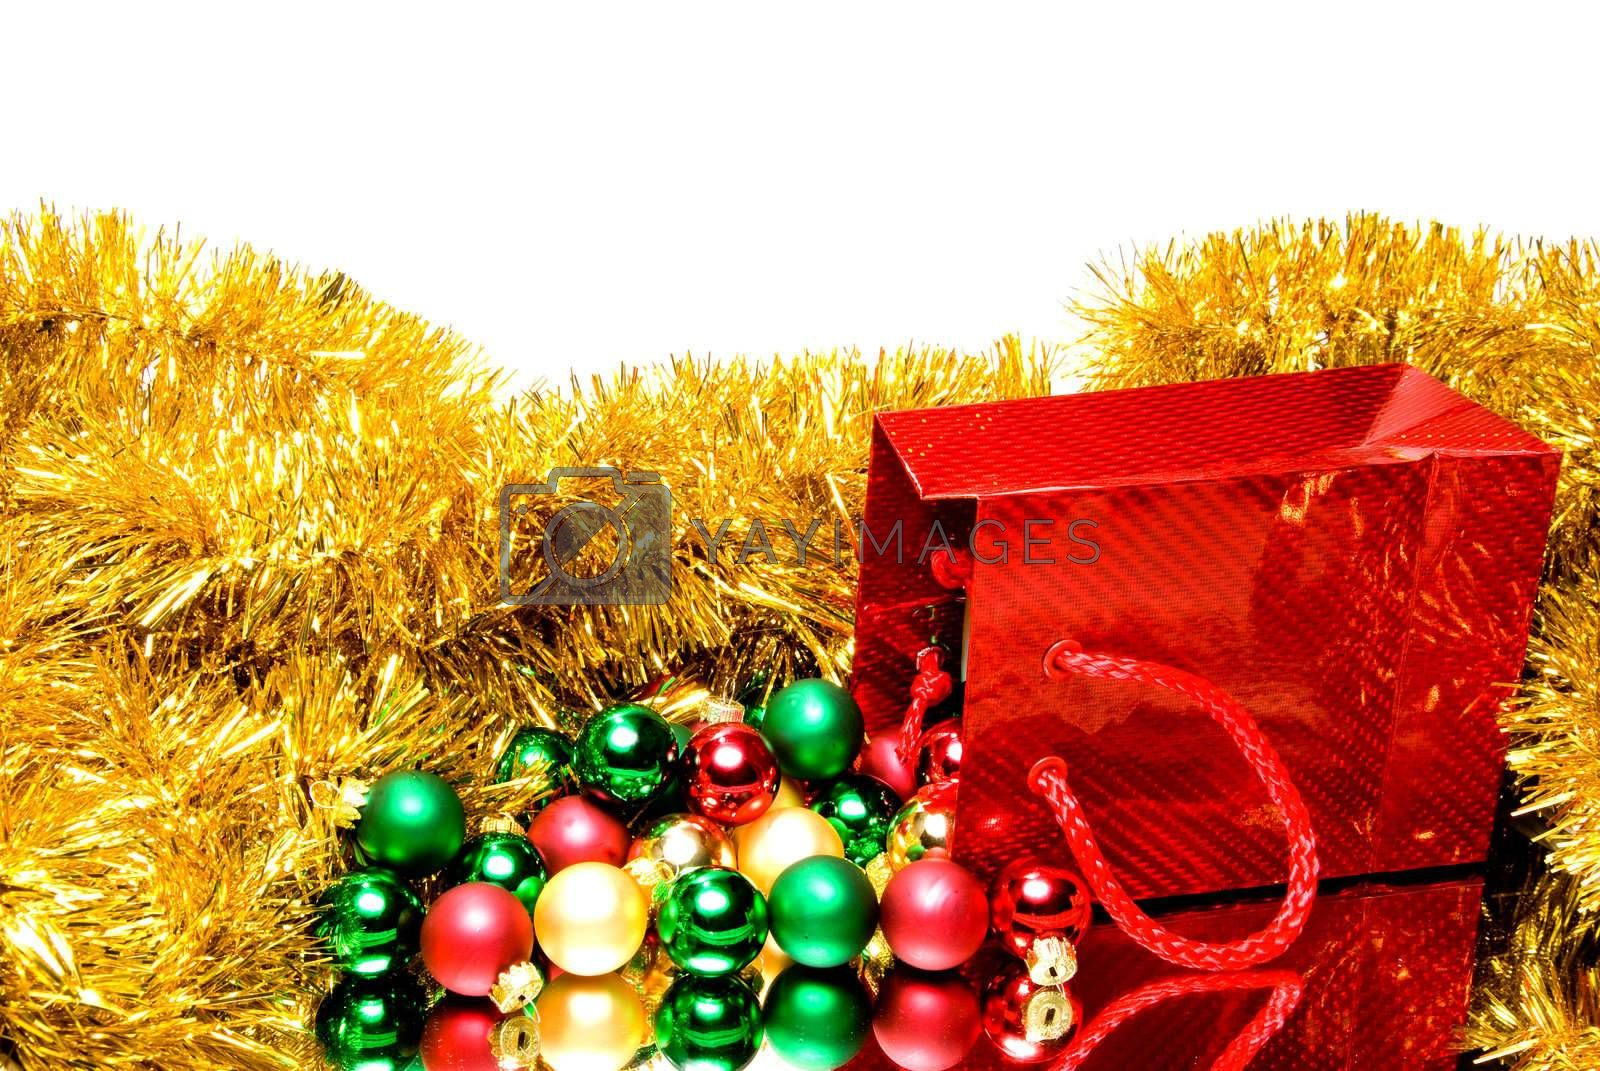 A pile of Christmas ornaments in a gift bag.